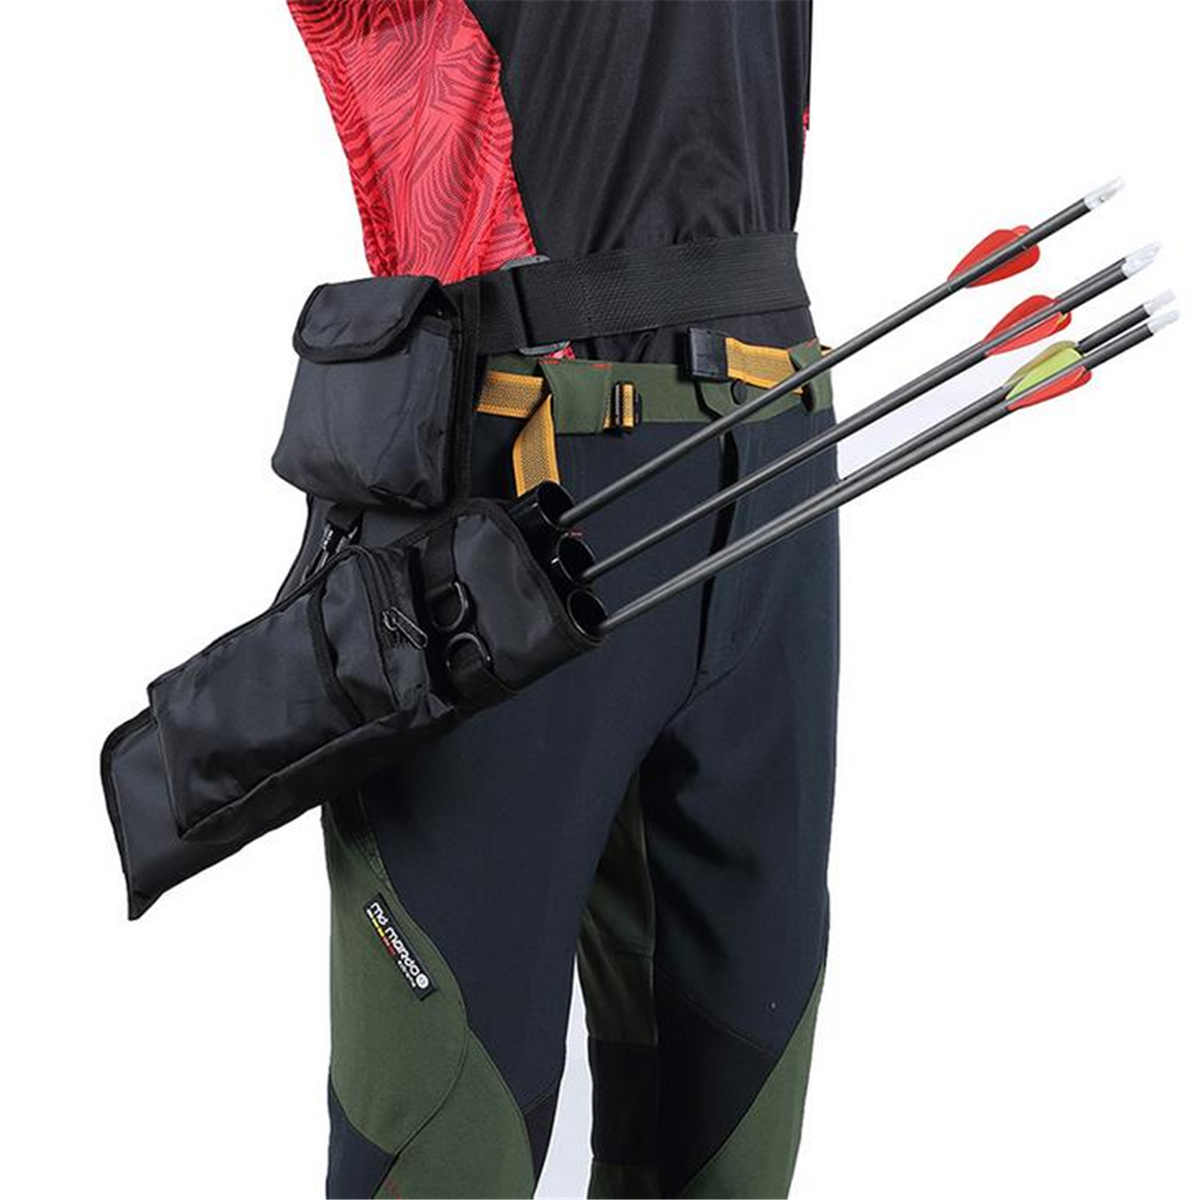 Bow Bag Arrow Holder 3-Tube Archery Quiver Adjustable Shoulder Strap Bags